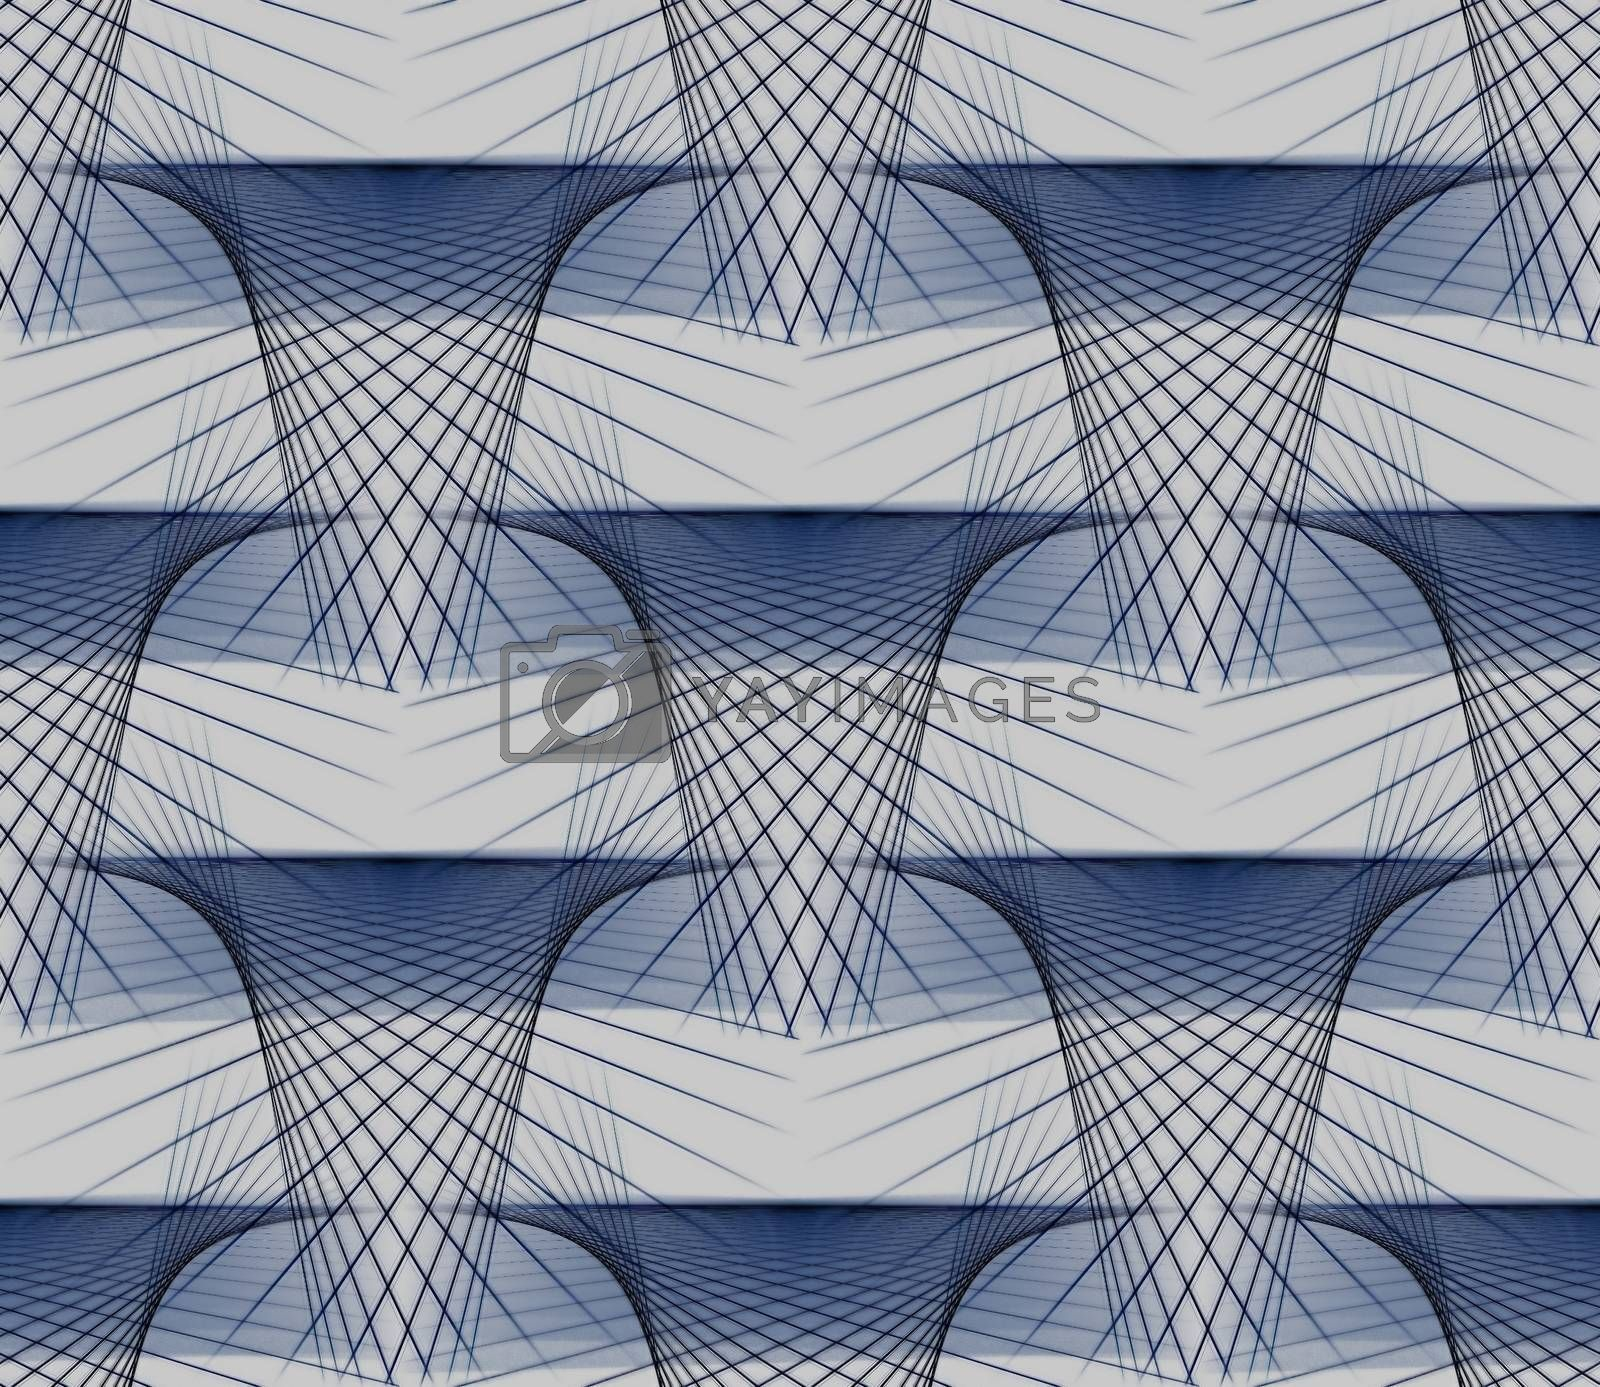 Abstract graphic of geometric three-dimensional patterns